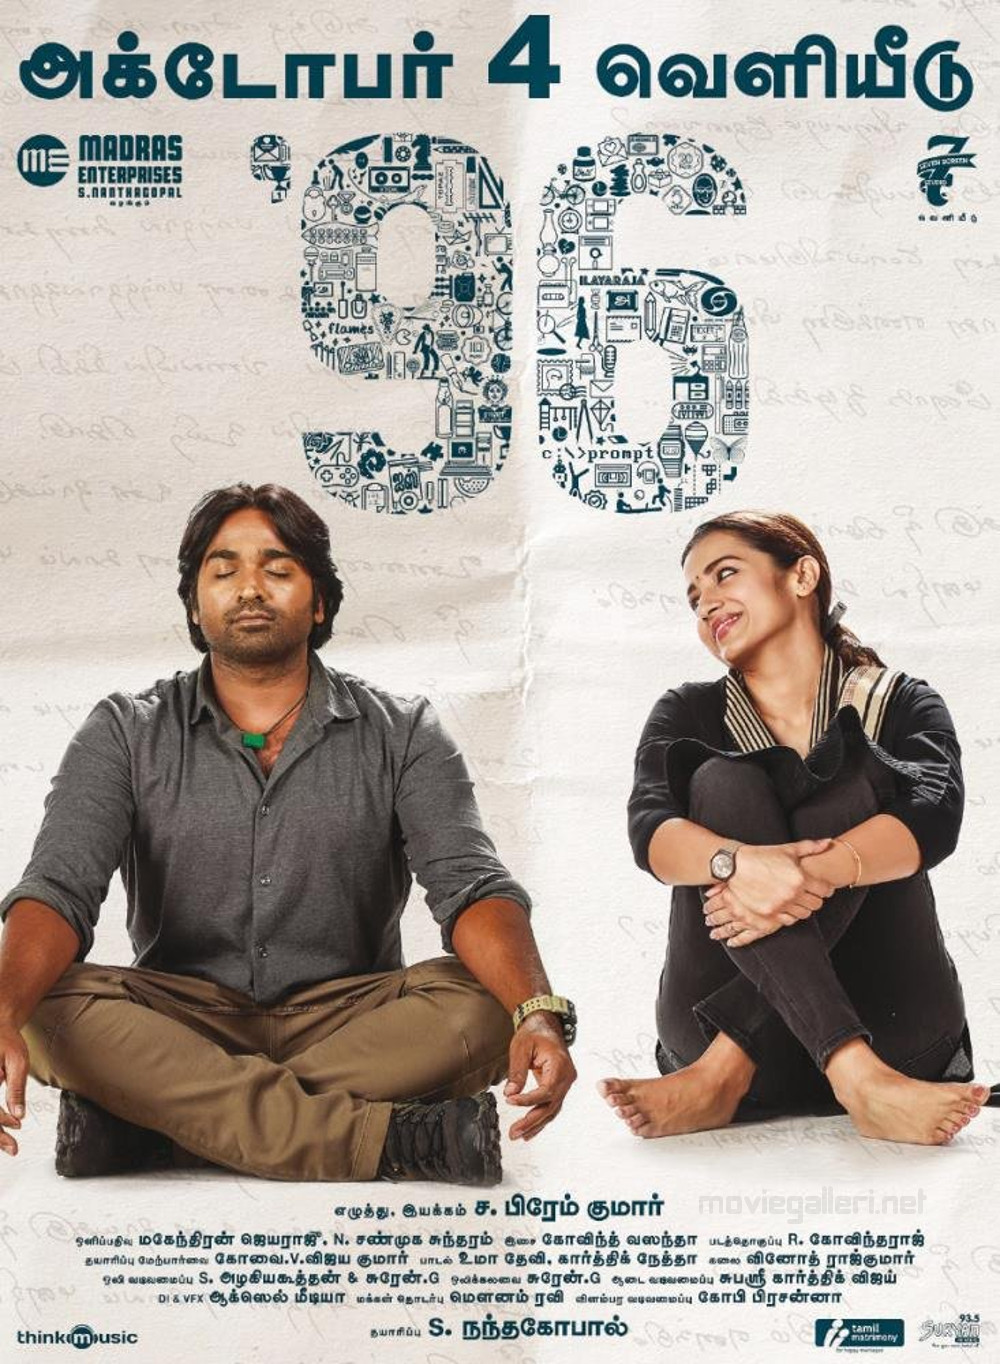 Vijay Sethupathi Trisha Krishnan 96 Movie Release Date October 4th Poster HD